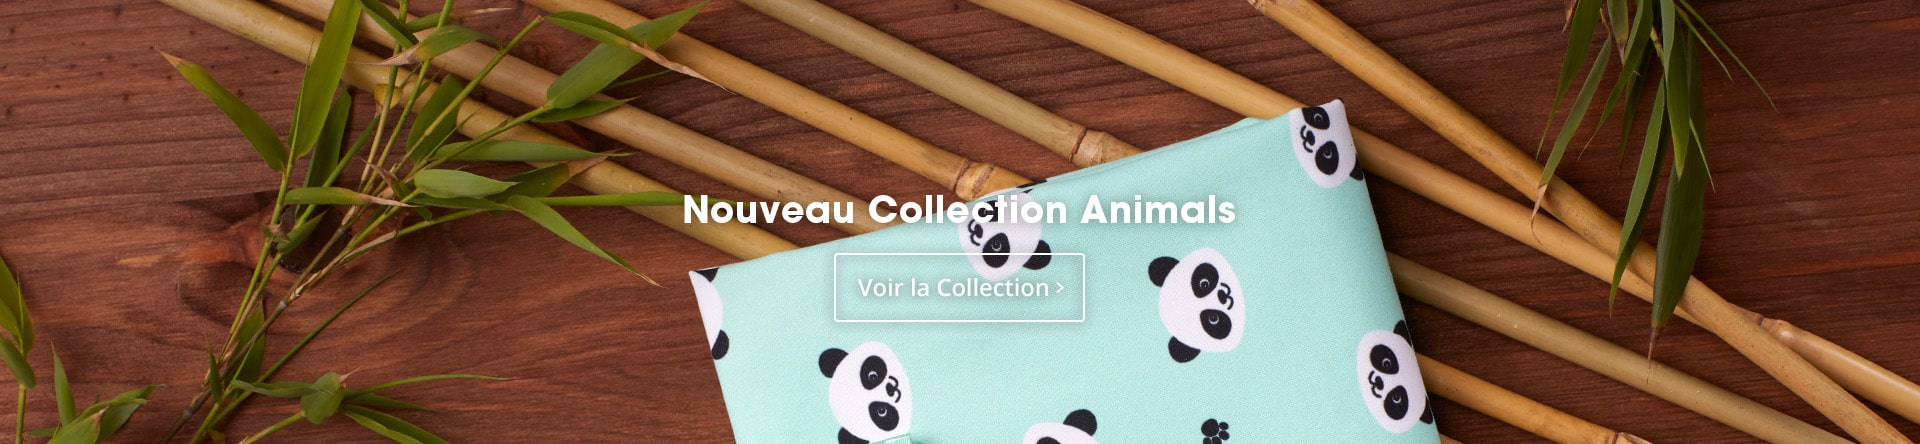 Nouveau Collection Animals